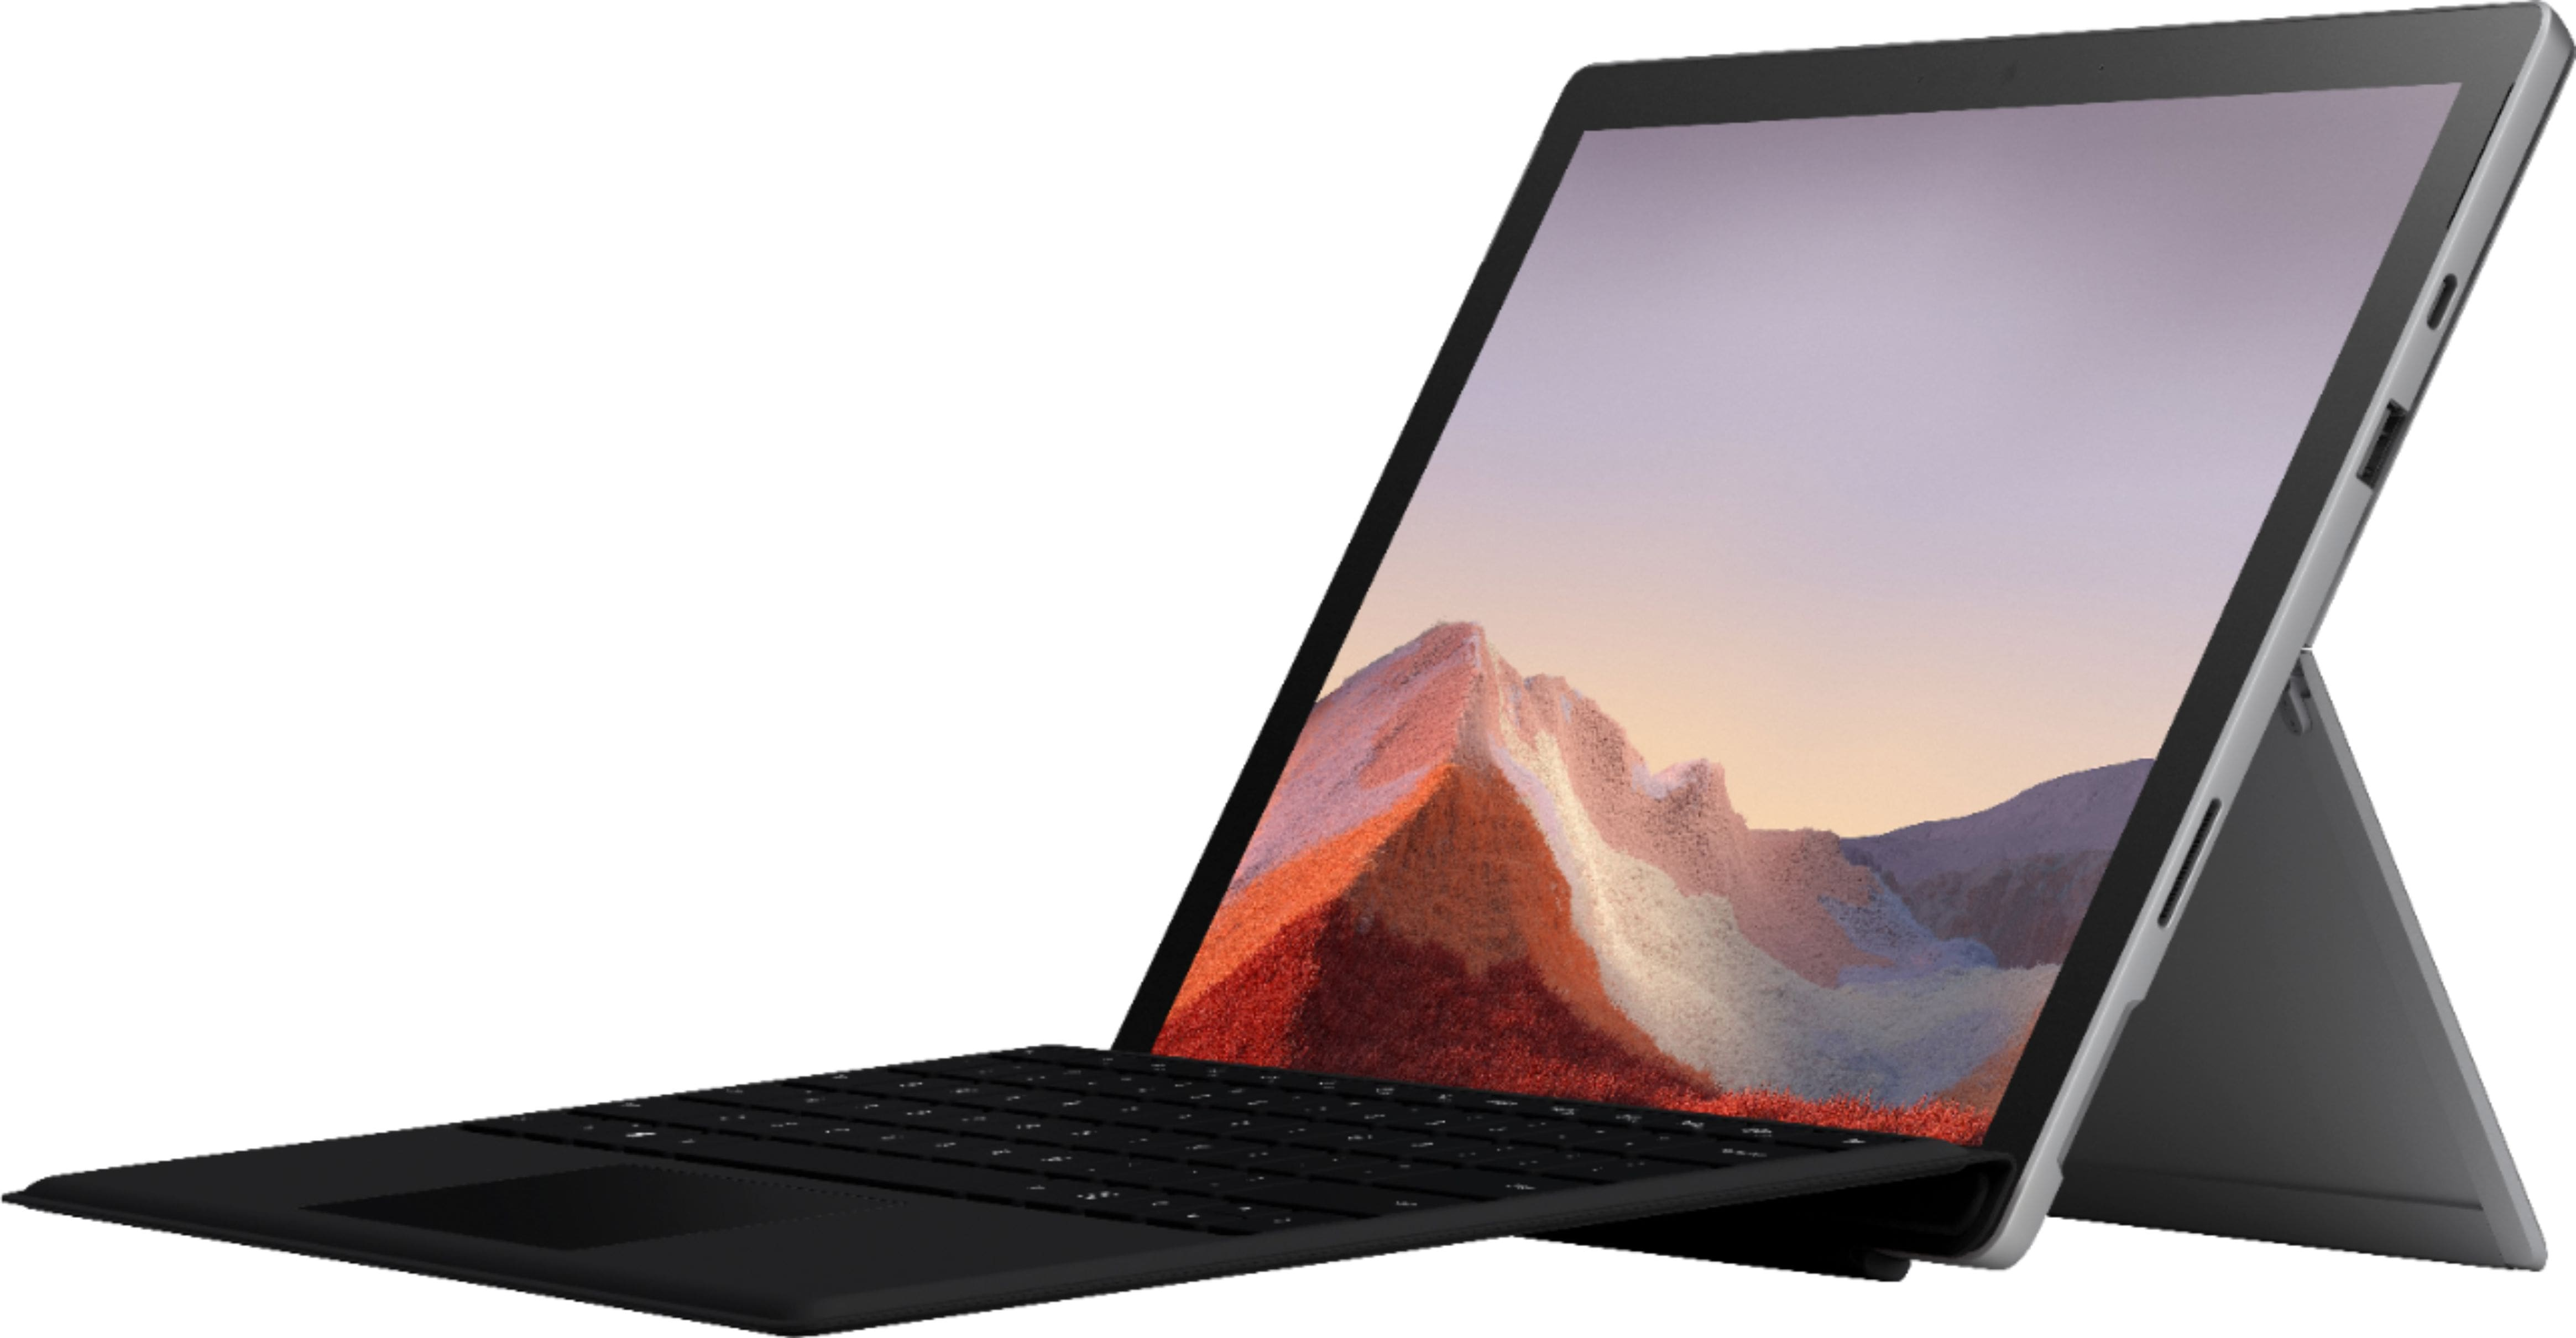 """$230 Off - Microsoft - Surface Pro 7 - 12.3"""" Touch Screen - Intel Core i5 - 8GB Memory - 128GB SSD with Black Type Cover (Latest Model) - Platinum - at BestBuy $799"""